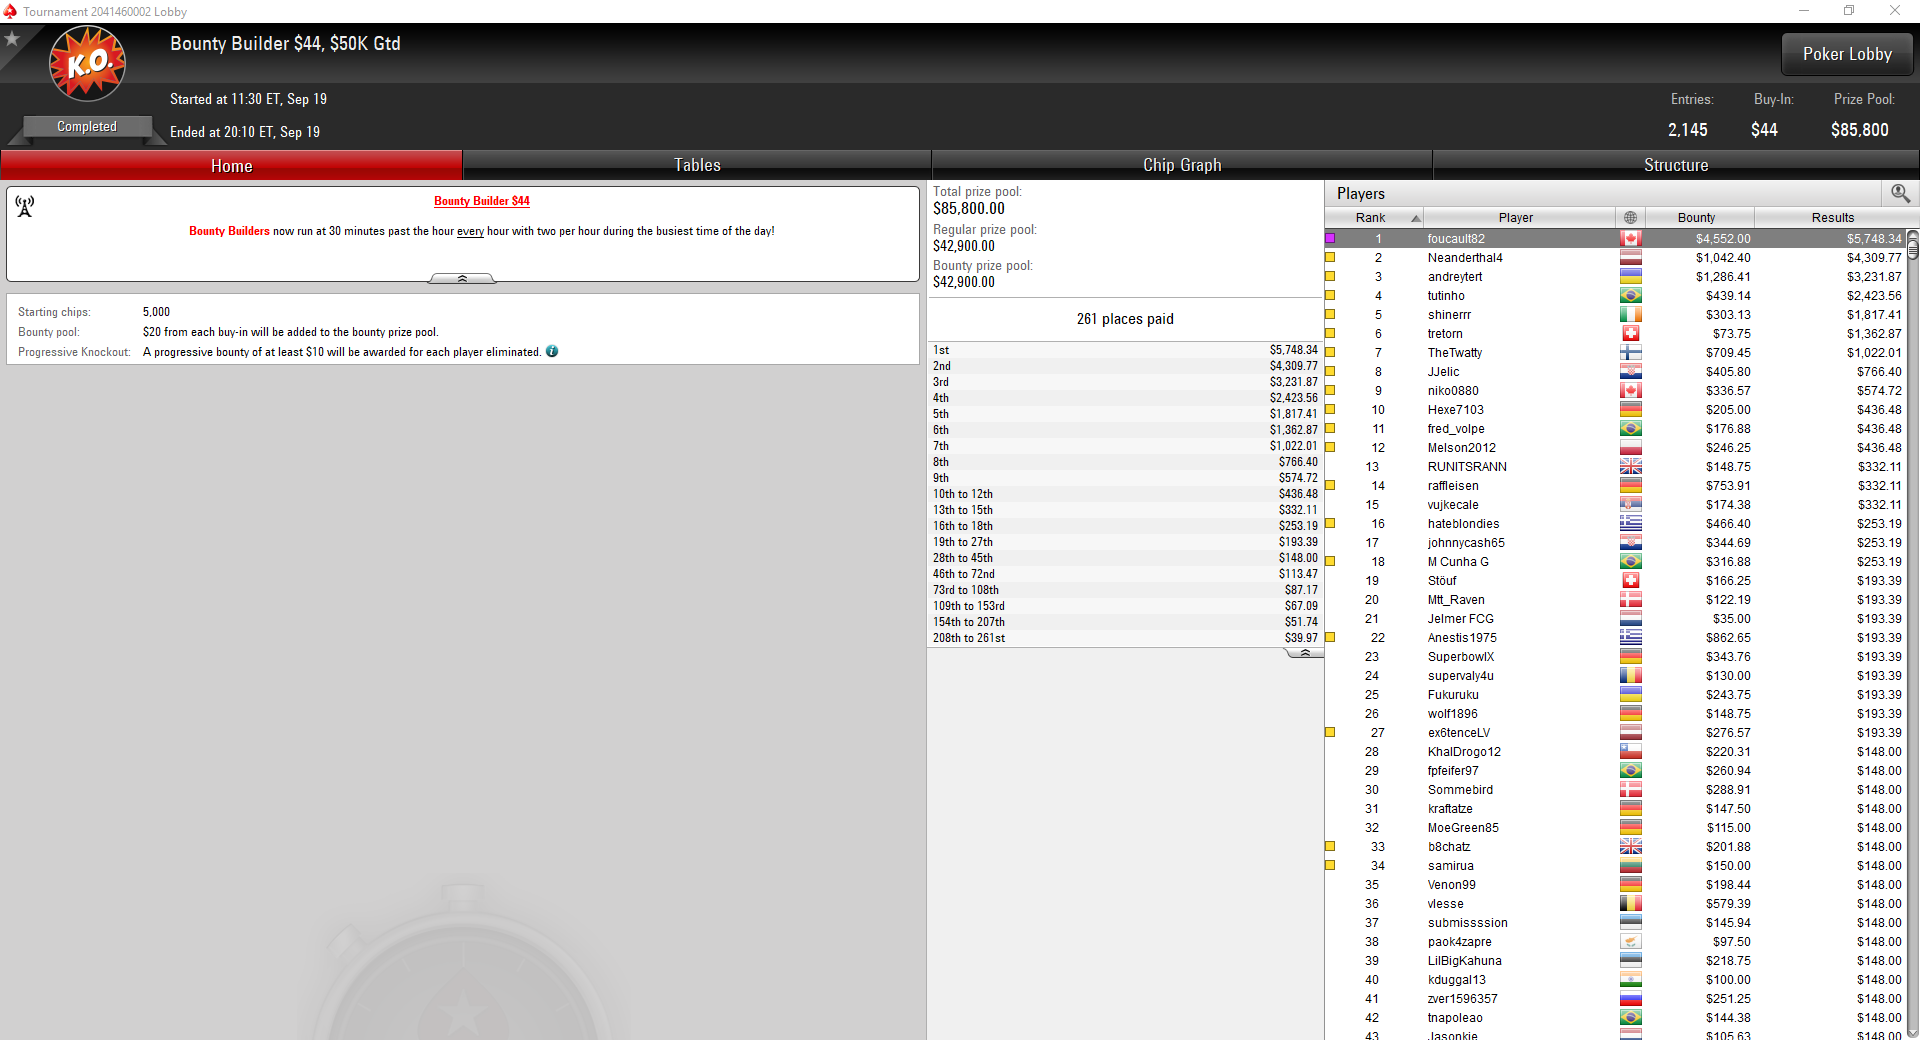 WCOOP Day 17 ($215 6-Max Rebuy, $530 Courchevel, $44 Bounty Builder)